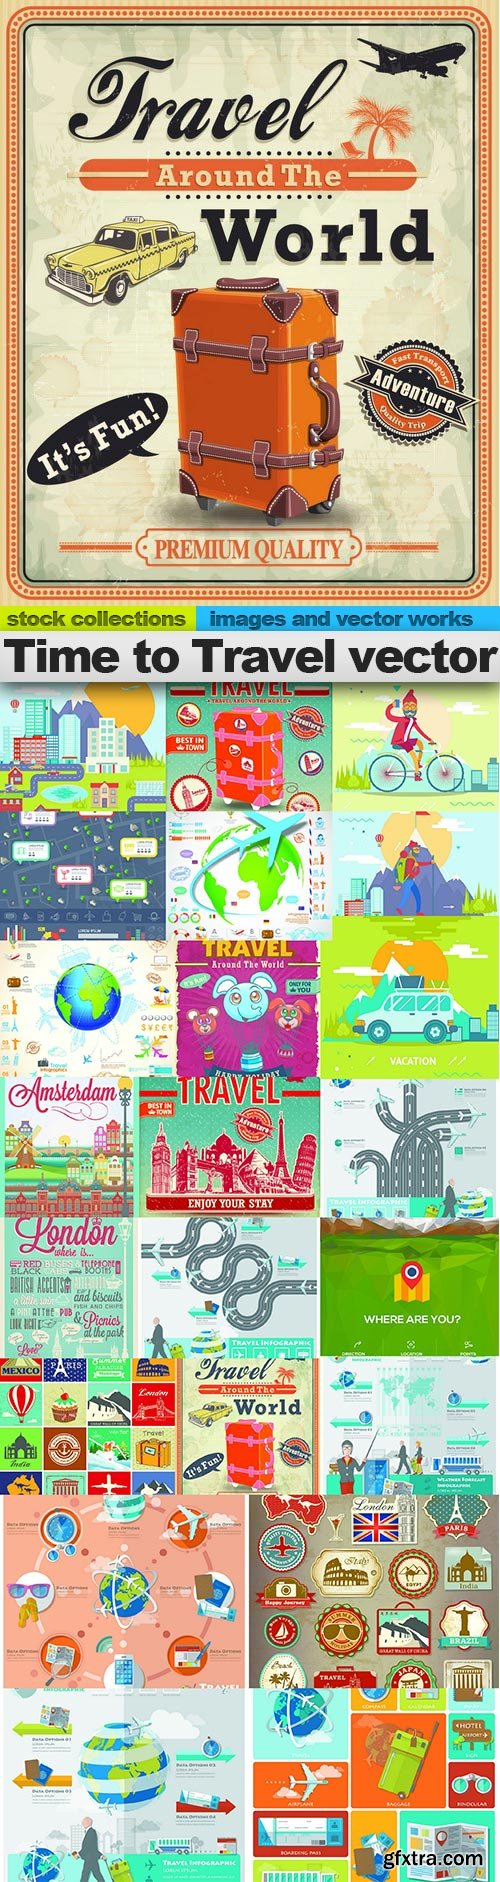 Time to Travel vector, 24 x EPS